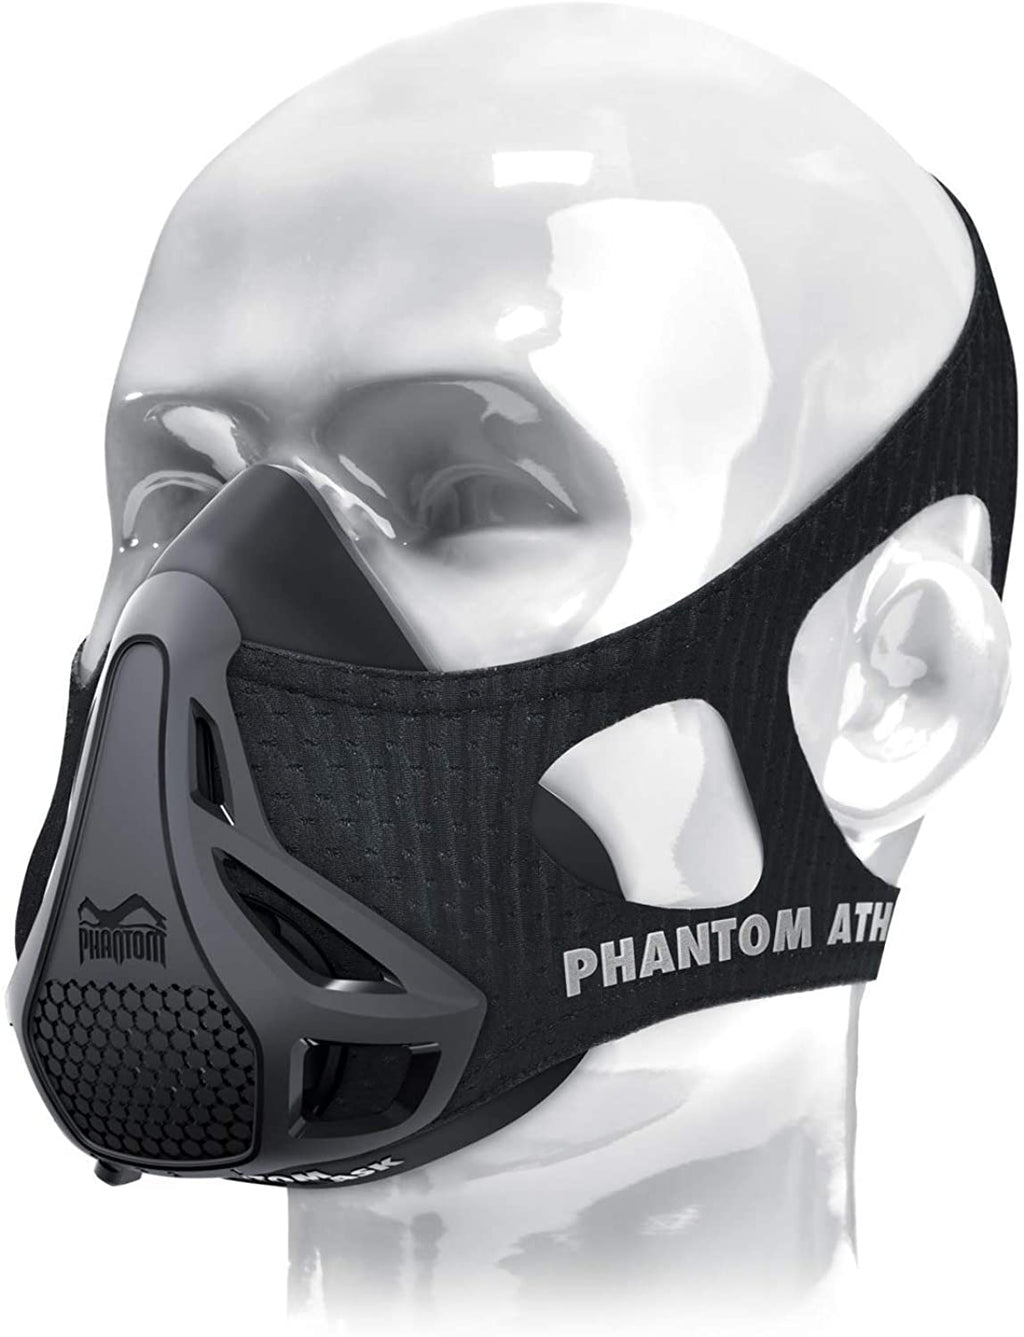 Mens Professional Gym Training Mask - training for better performance in sports